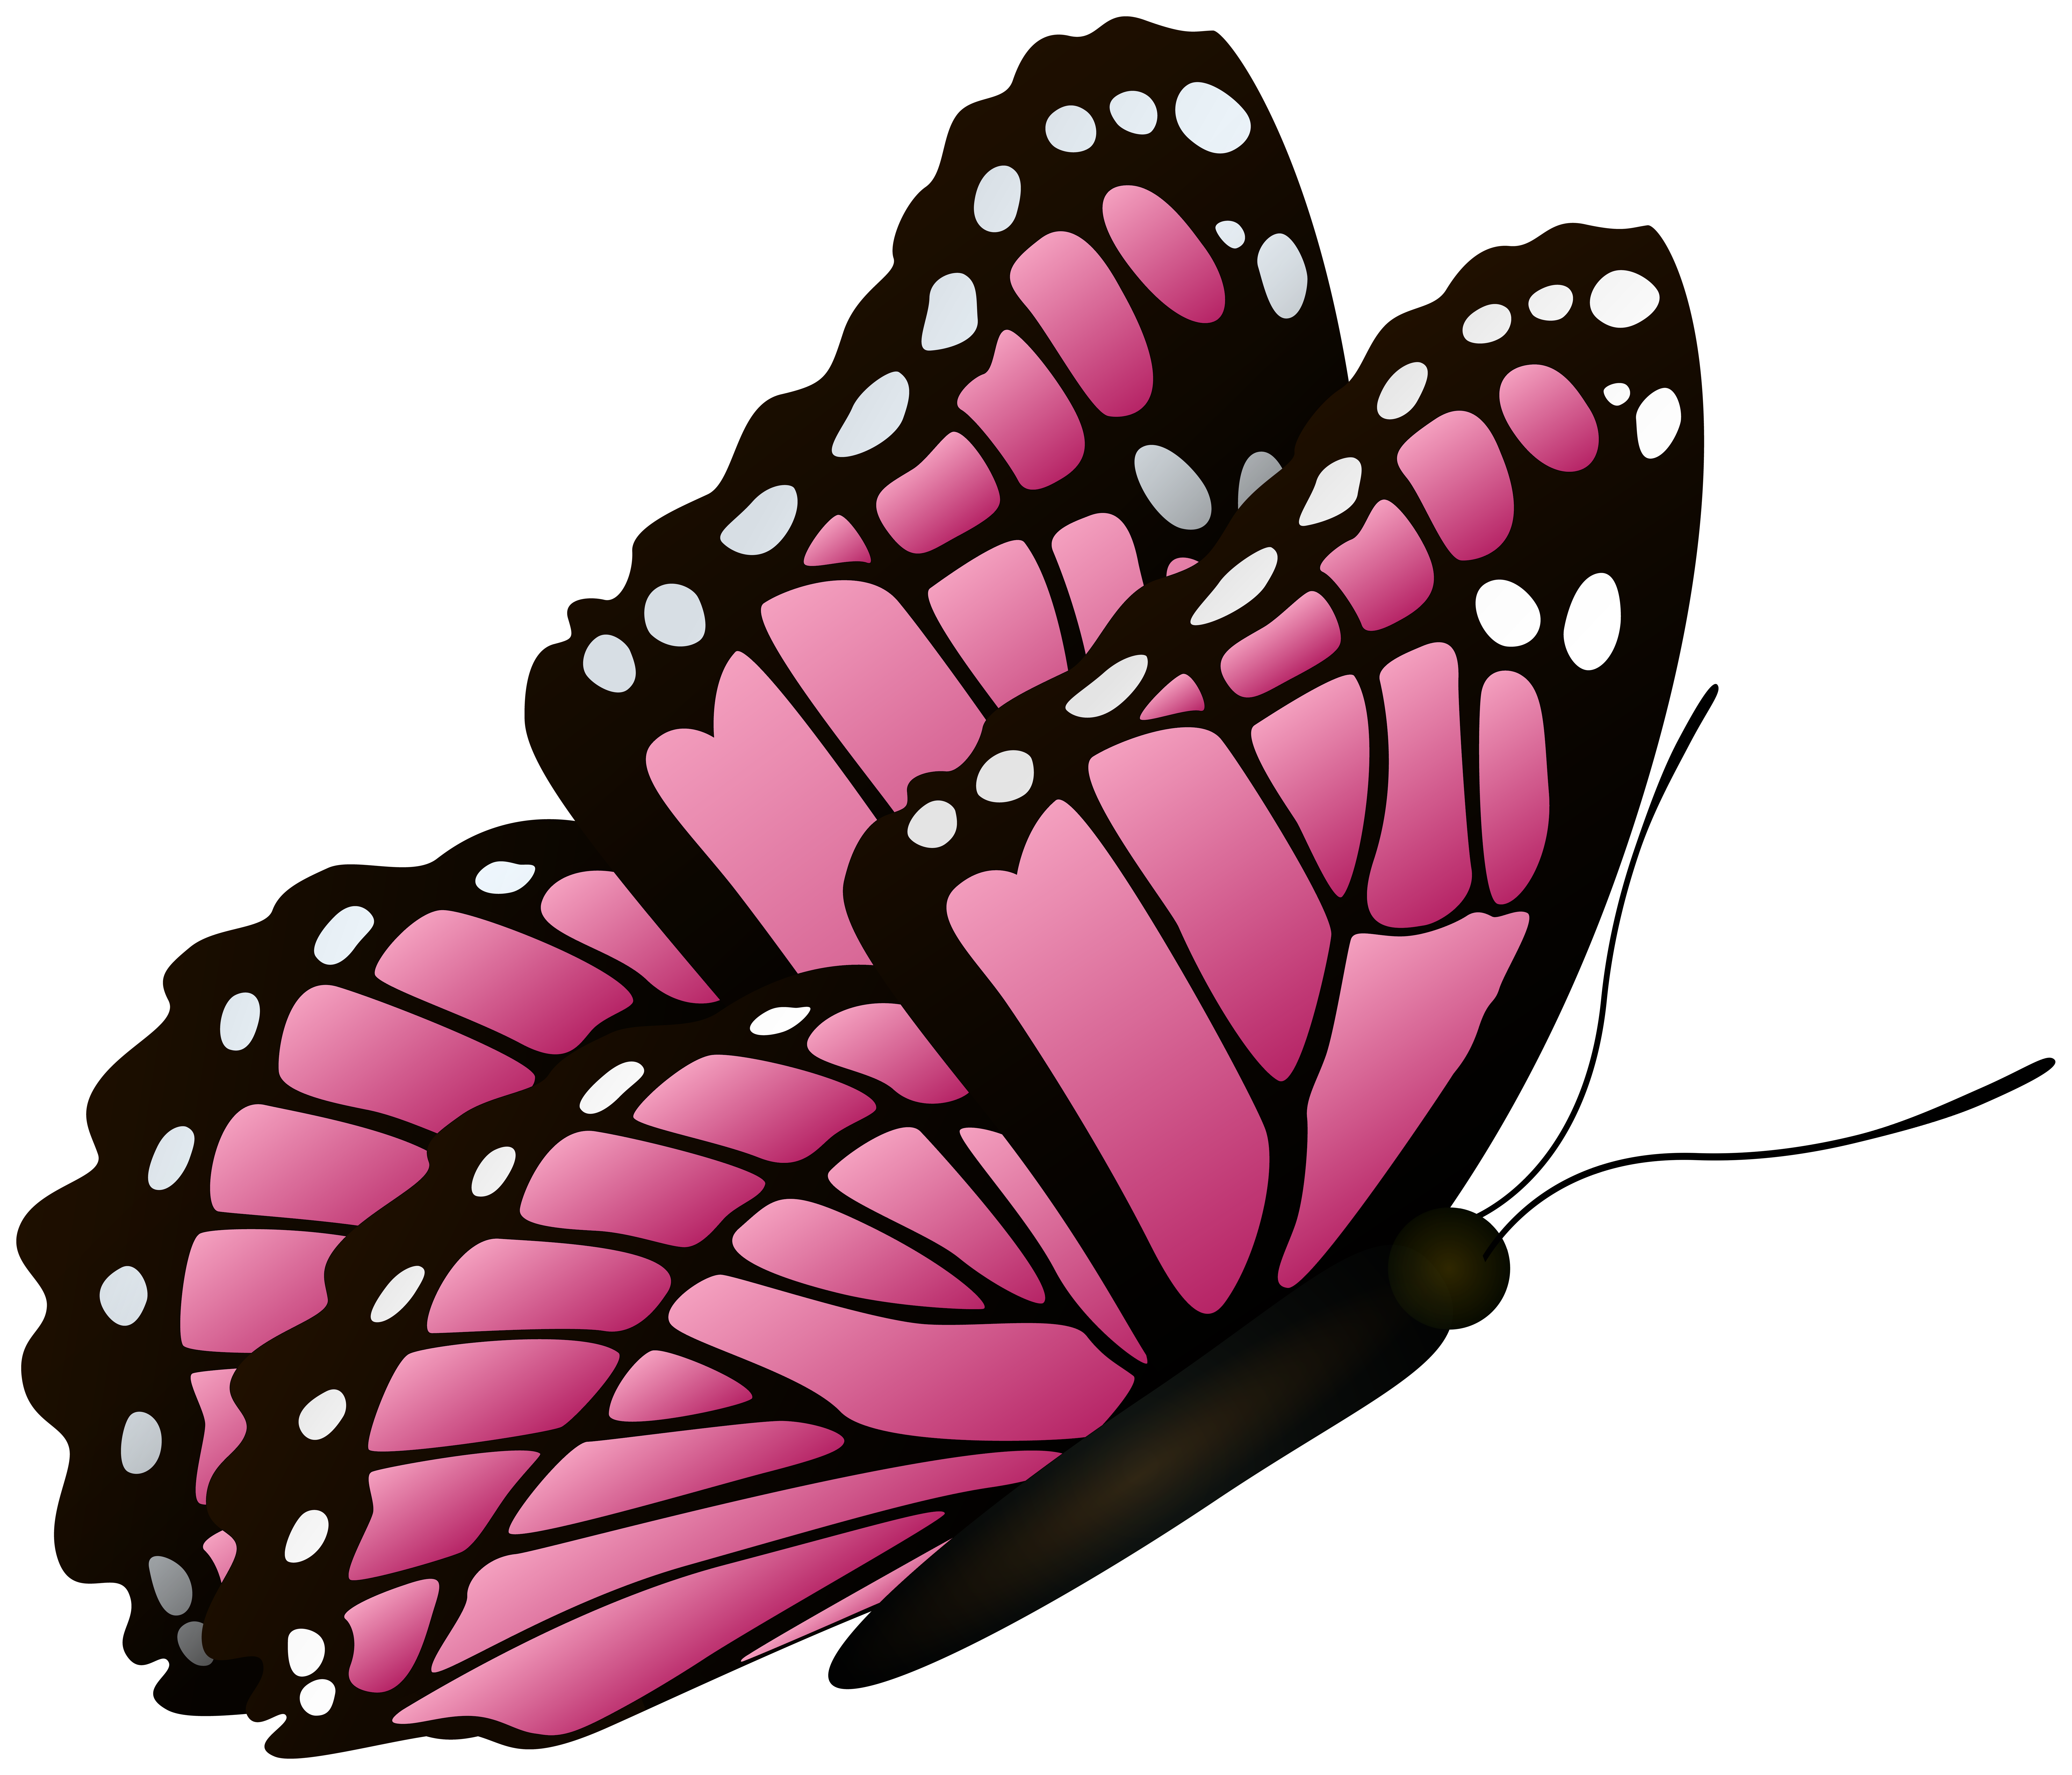 Flying Butterfly Pink Clipart Image.